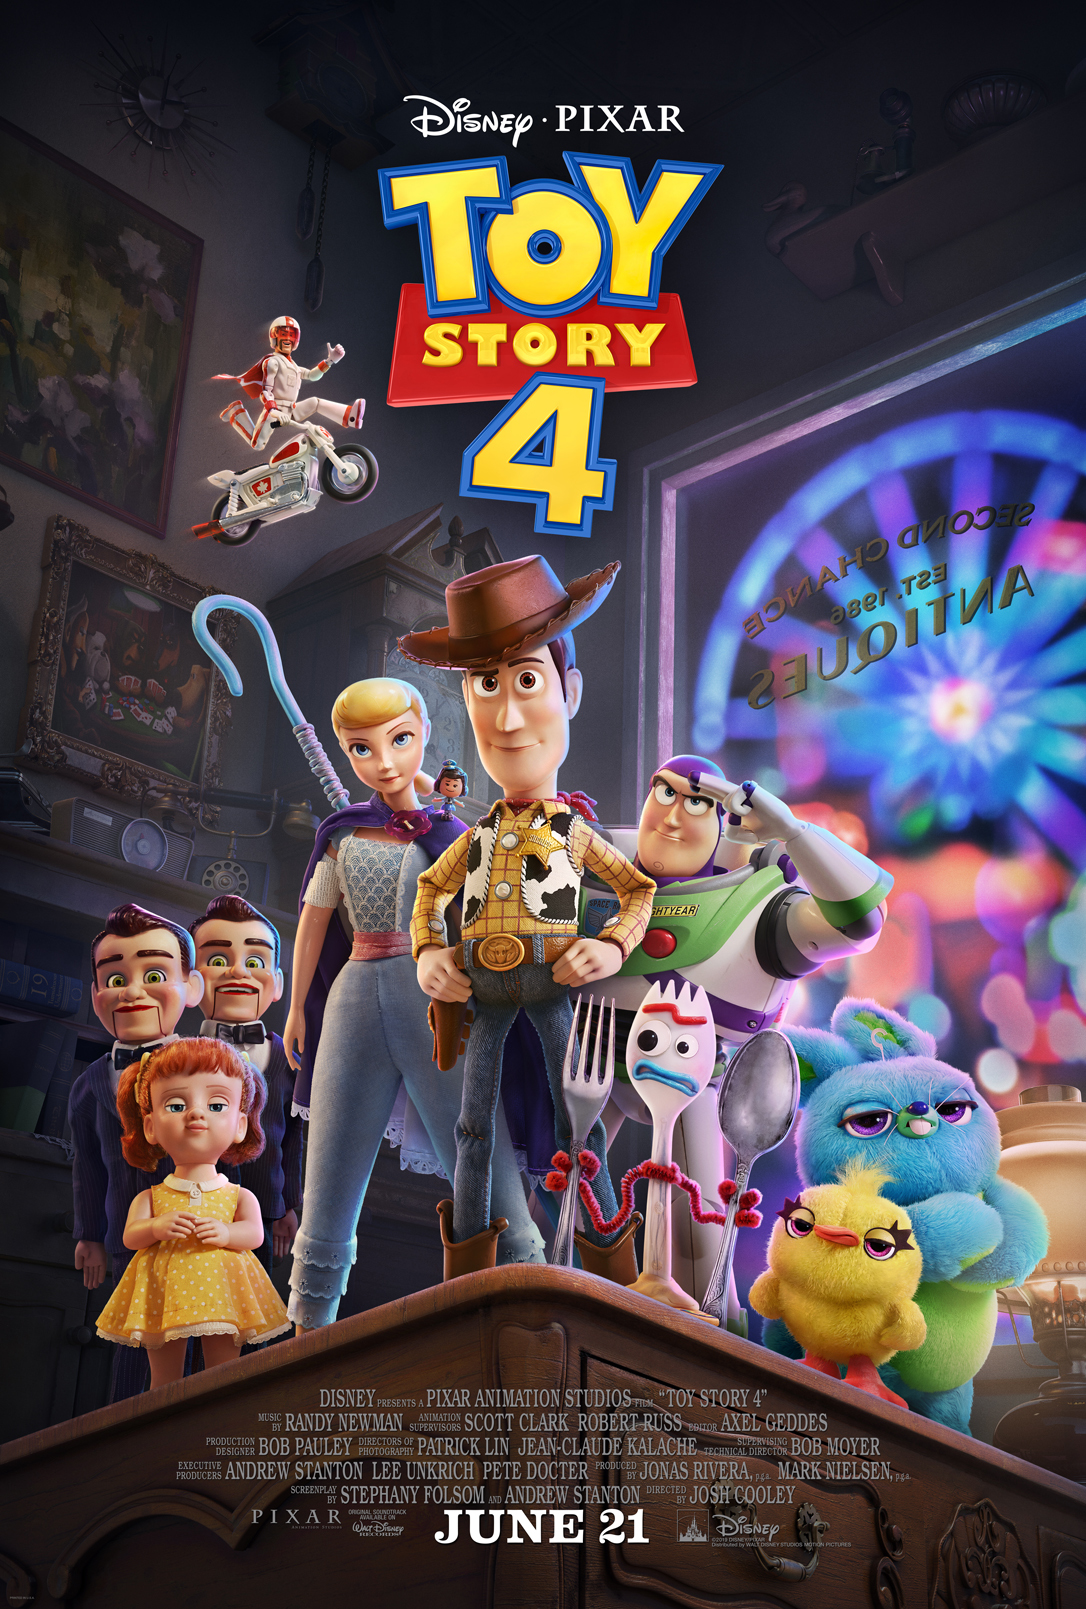 Toy Story 4 (2019) BluRay 480p, 720p, 1080p & 4K-2160p